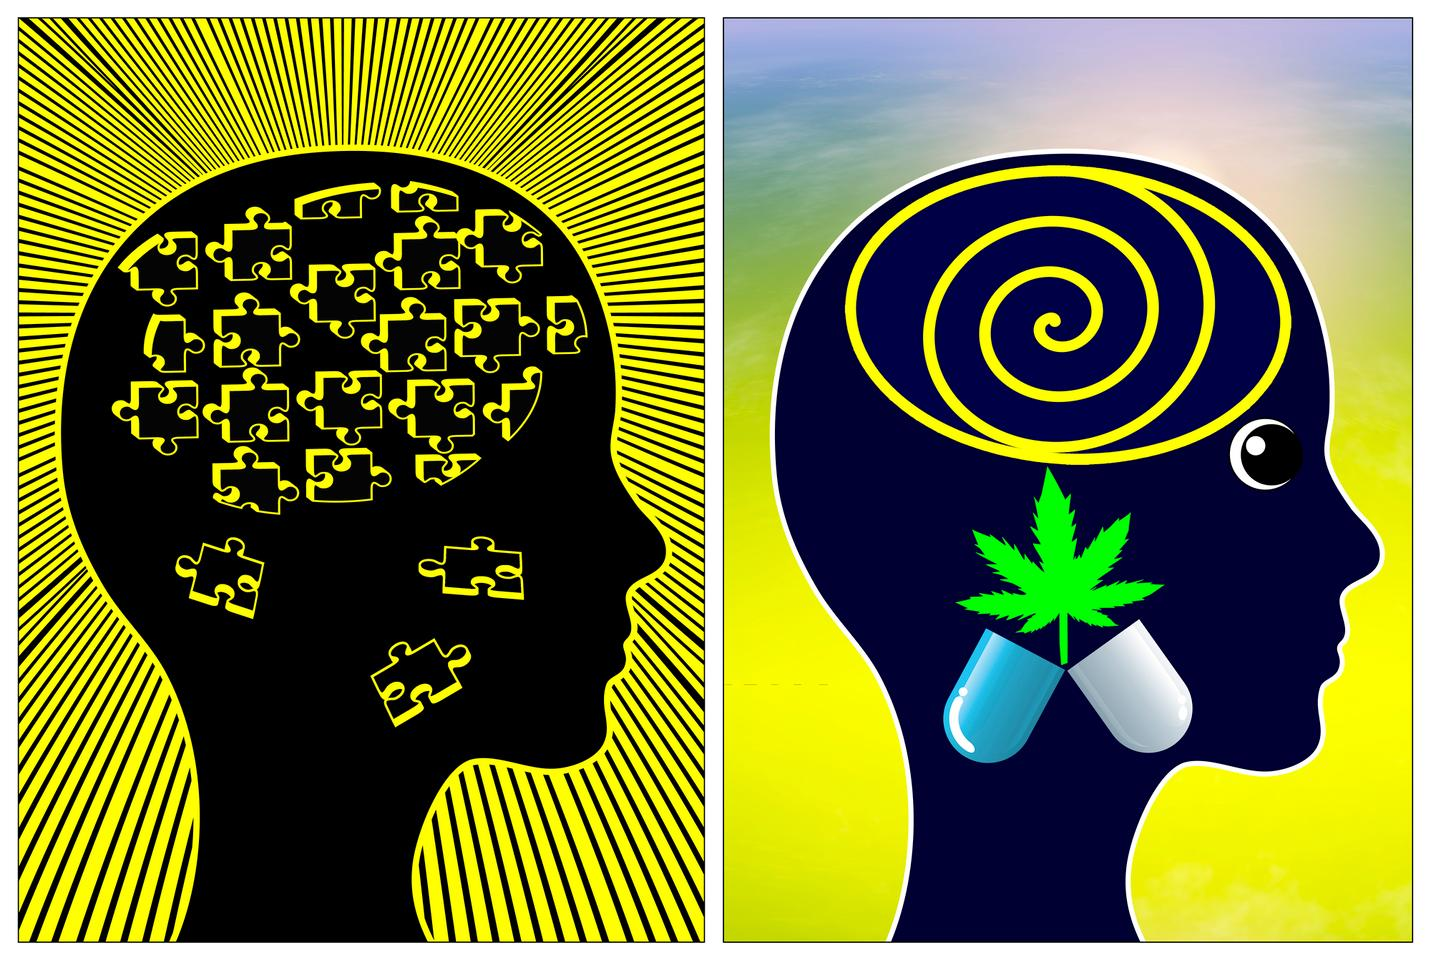 Observational research suggests an association between cannabis use and medication overuse headaches